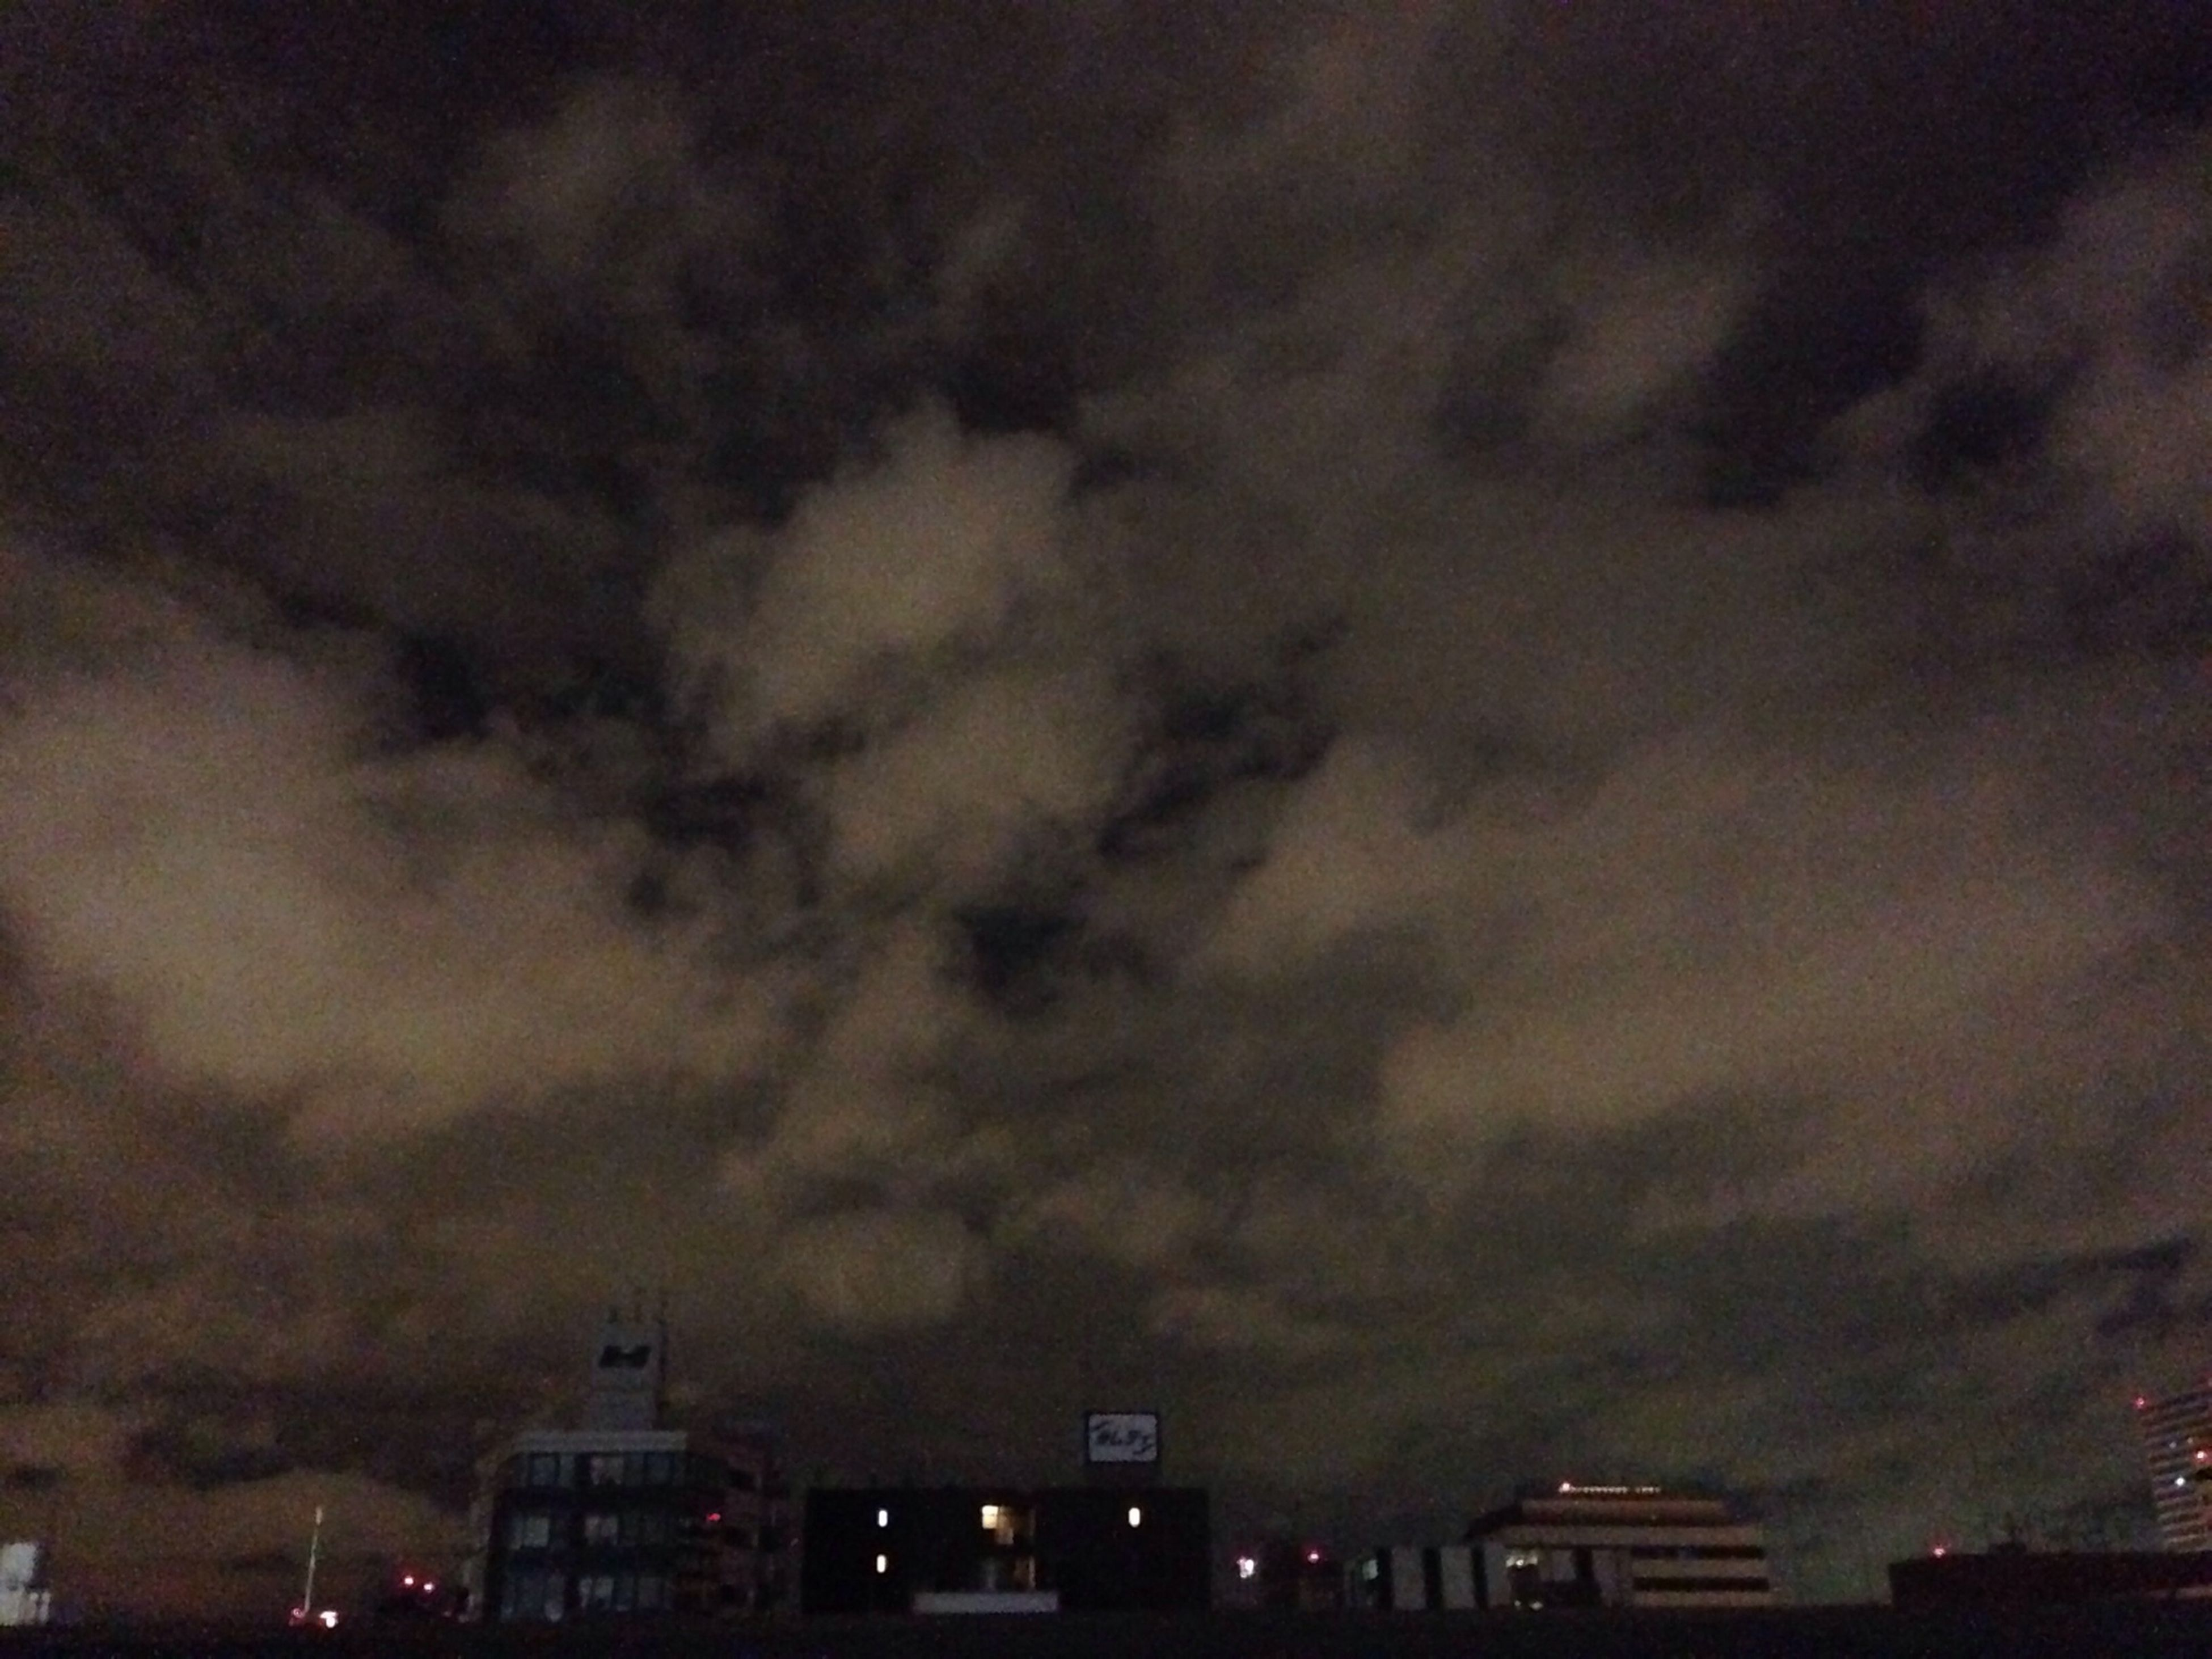 building exterior, sky, architecture, built structure, cloud - sky, cloudy, storm cloud, weather, overcast, night, city, dusk, illuminated, residential building, dramatic sky, residential structure, house, atmospheric mood, outdoors, low angle view